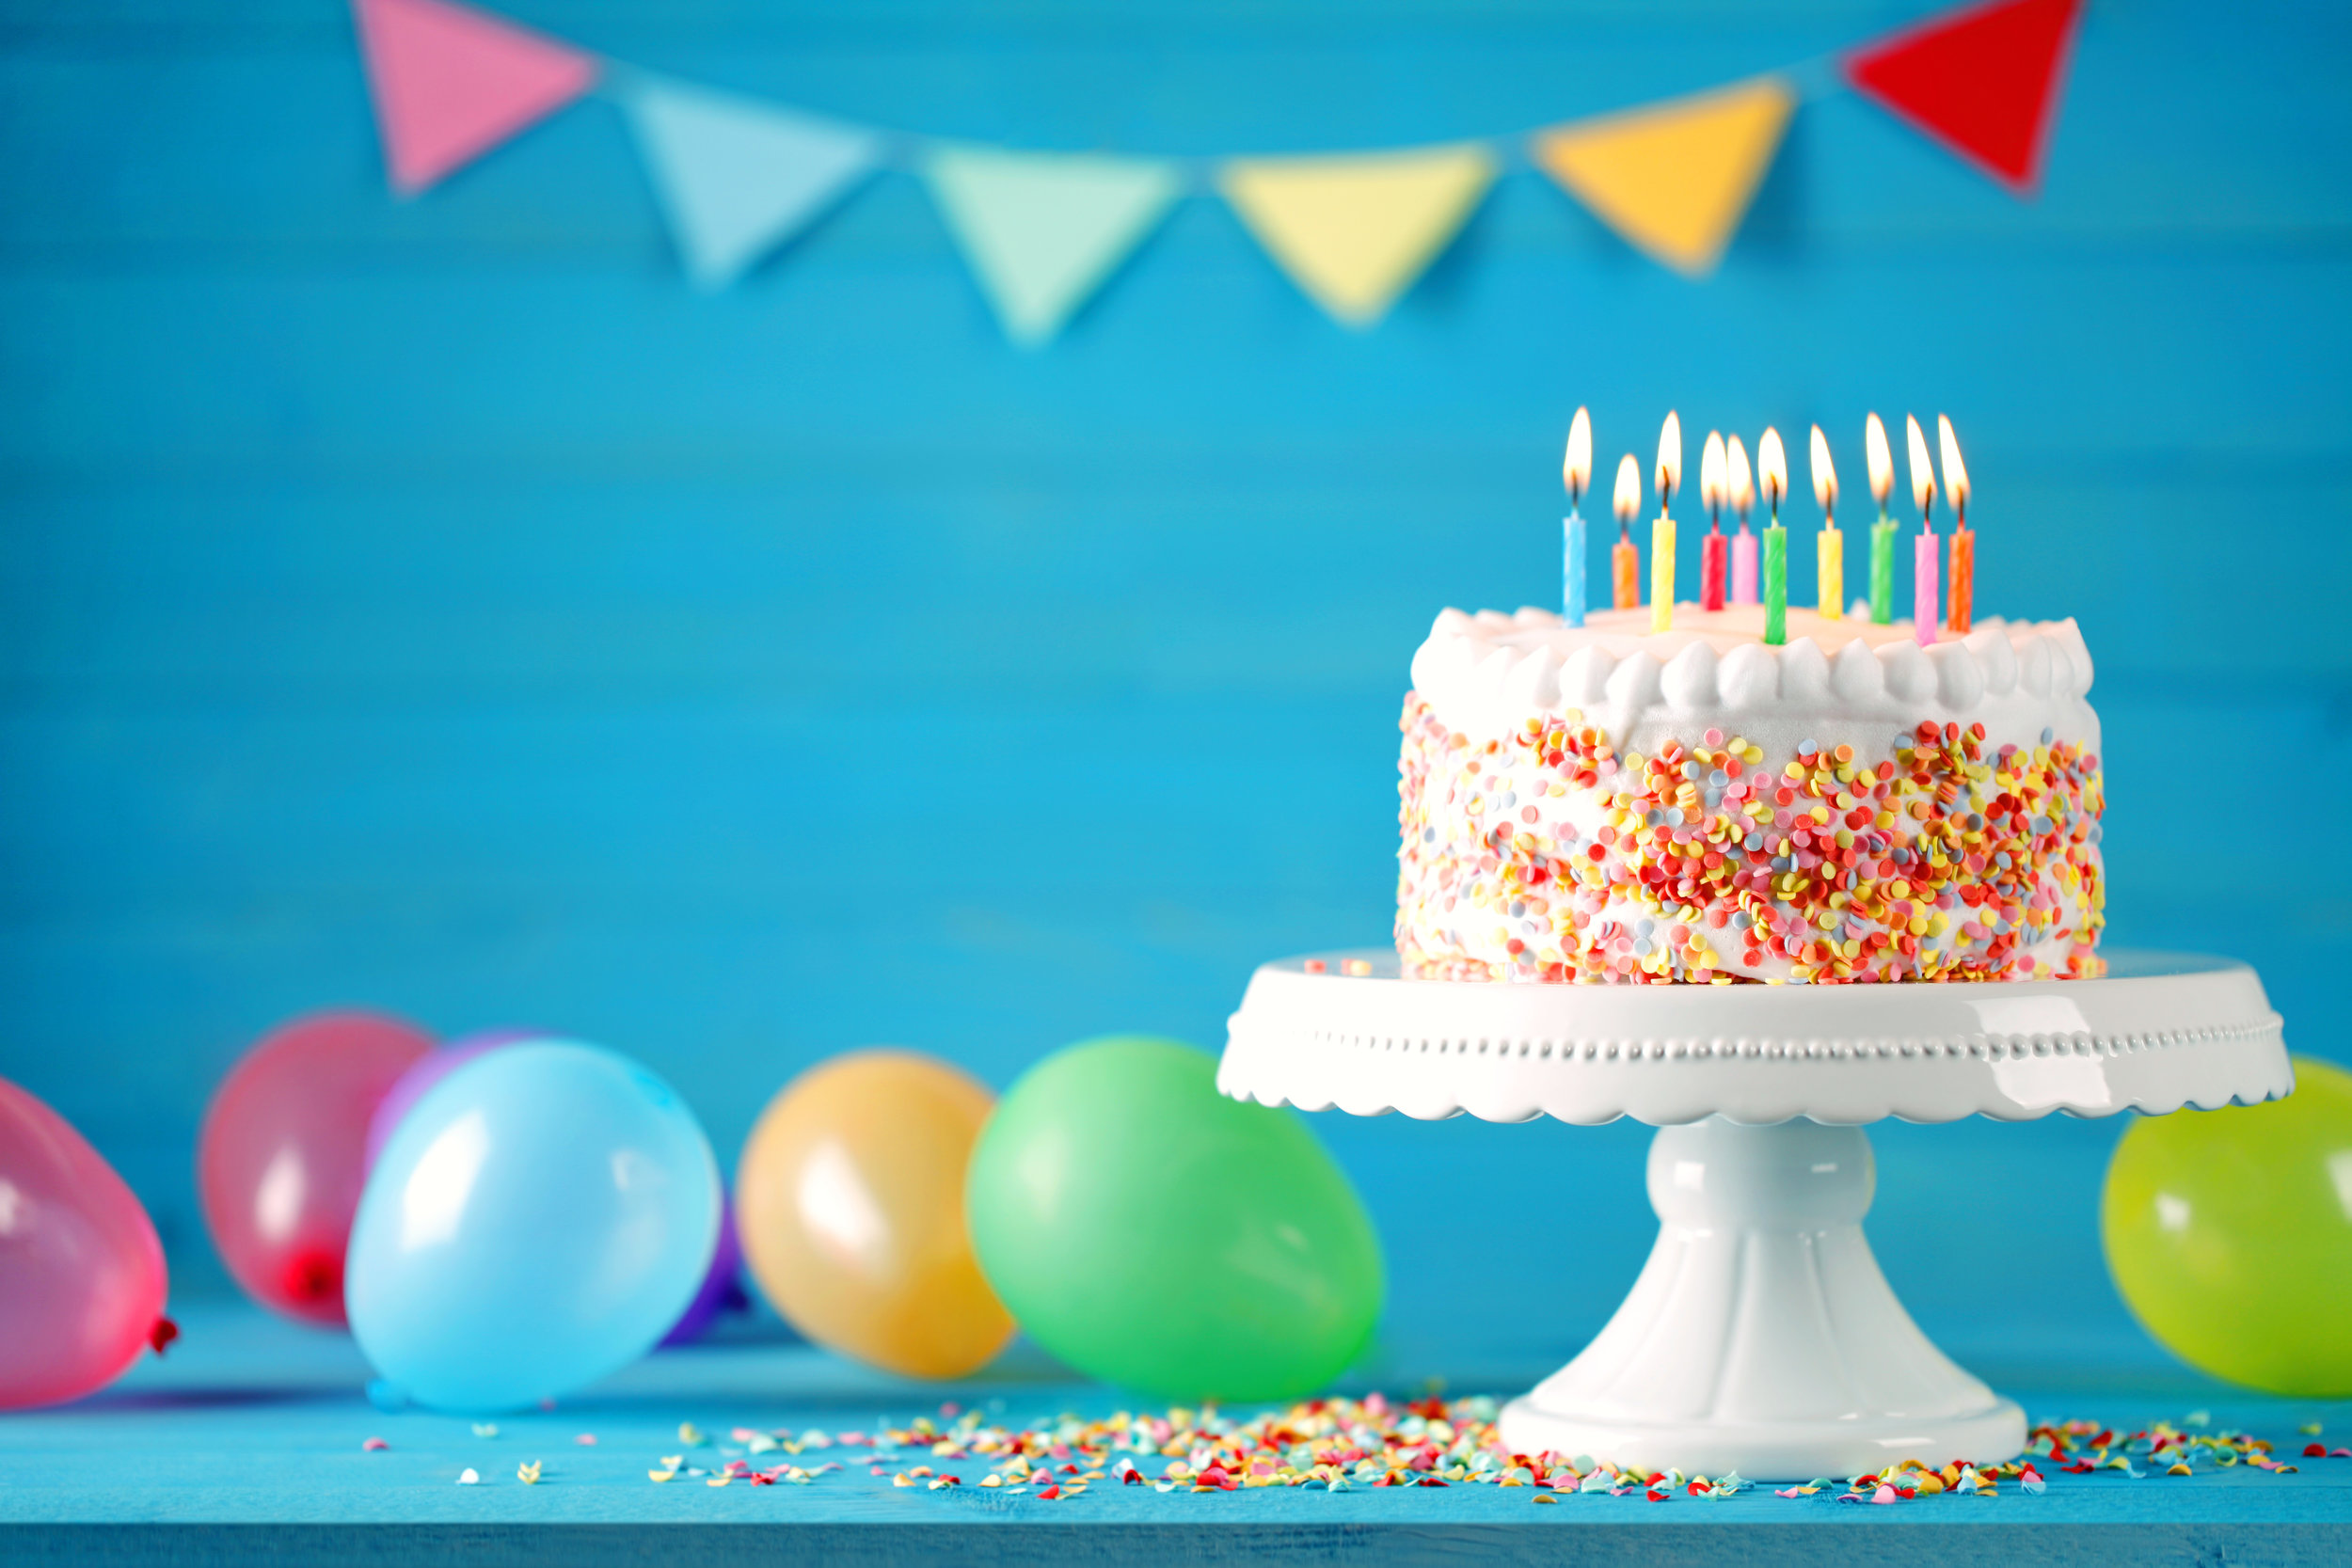 Donate Your Birthday - You can make a big impact this year by donating your birthday or other special occasion to Bridging For Tomorrow. When you donate your birthday, you invite your friends and family to help you celebrate by making donations to support our programs. Learn more.